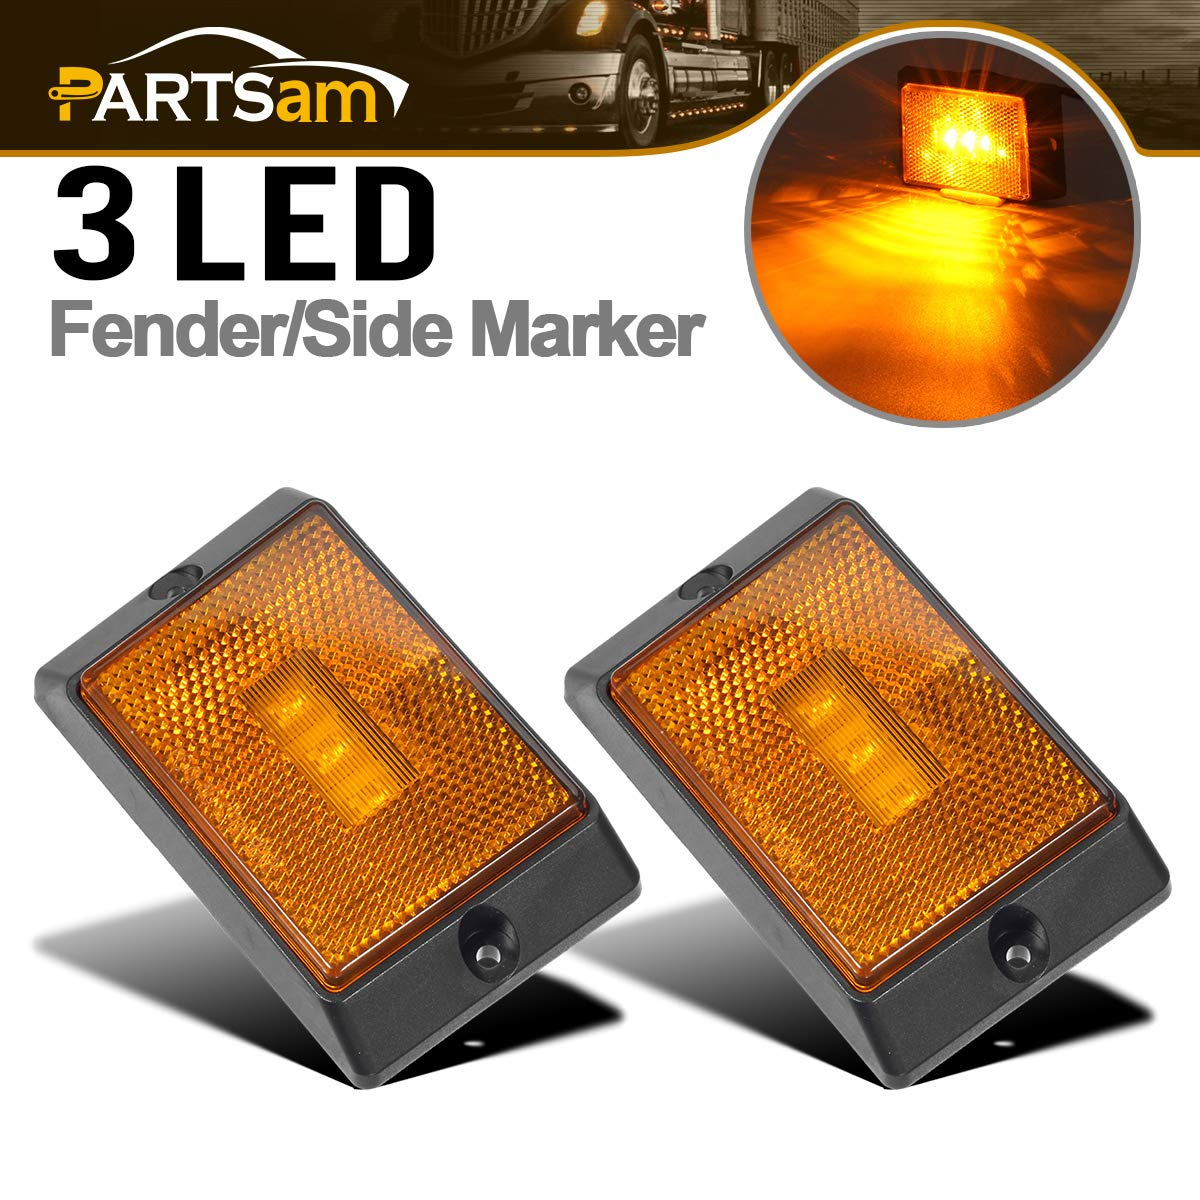 Partsam 2 Pcs Amber Yellow Front Side Marker/Clearance Light with Reflex Lens with Black Surface Mount Base, 2-4/5' Rectangle LED Truck Trailer Light Towing Accessories 2-4/5 Rectangle LED Truck Trailer Light Towing Accessories